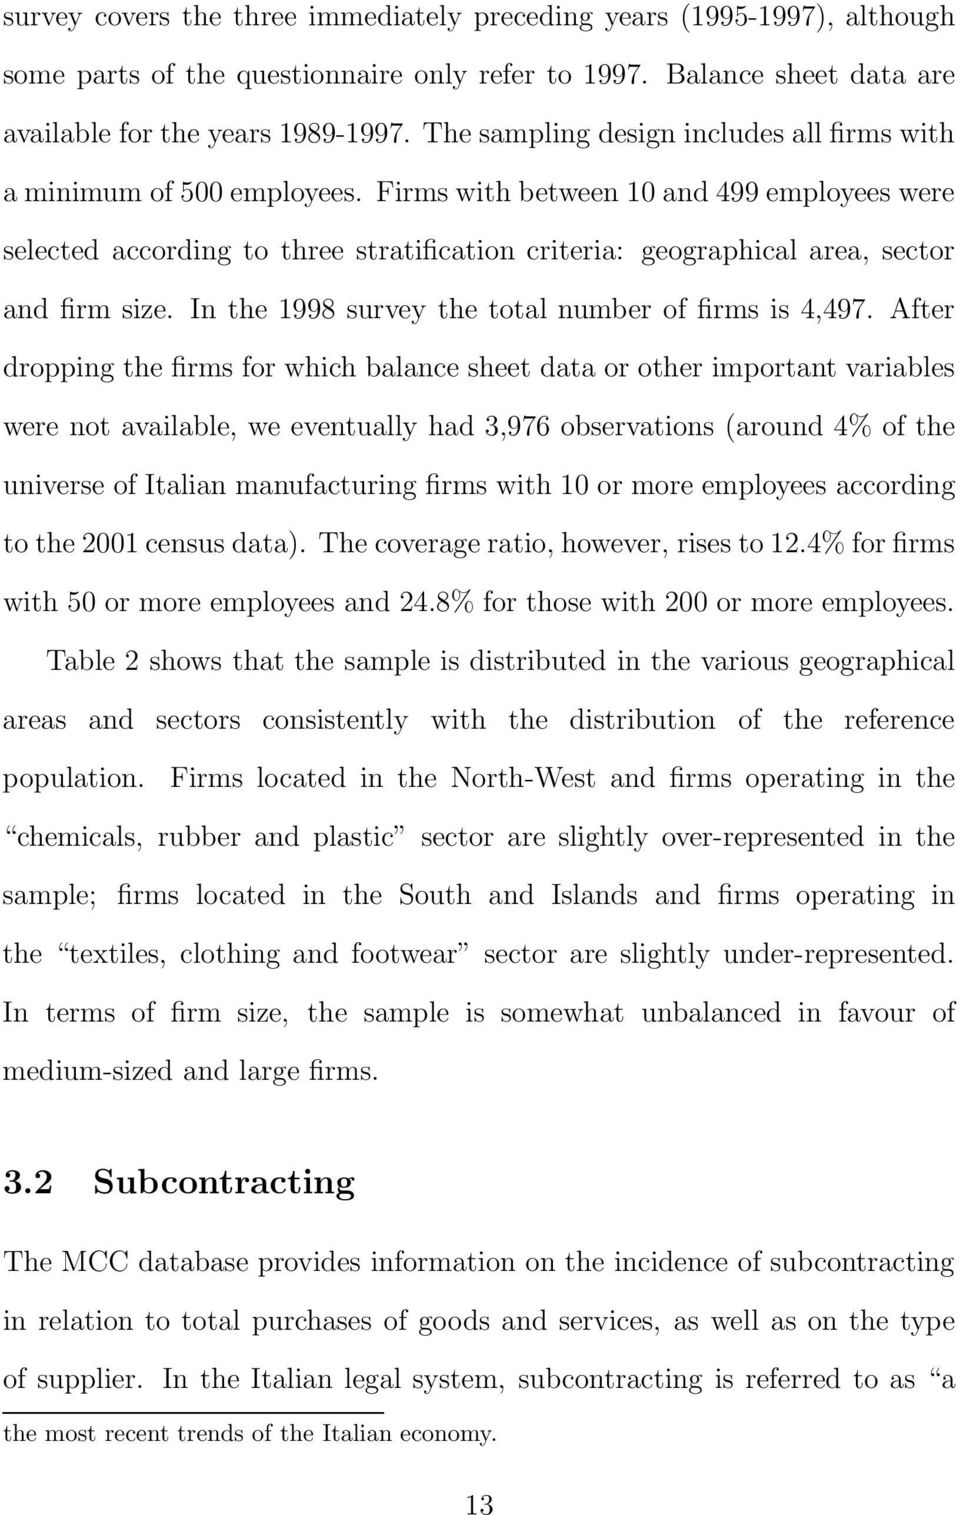 Firms with between 10 and 499 employees were selected according to three stratification criteria: geographical area, sector and firm size. In the 1998 survey the total number of firms is 4,497.